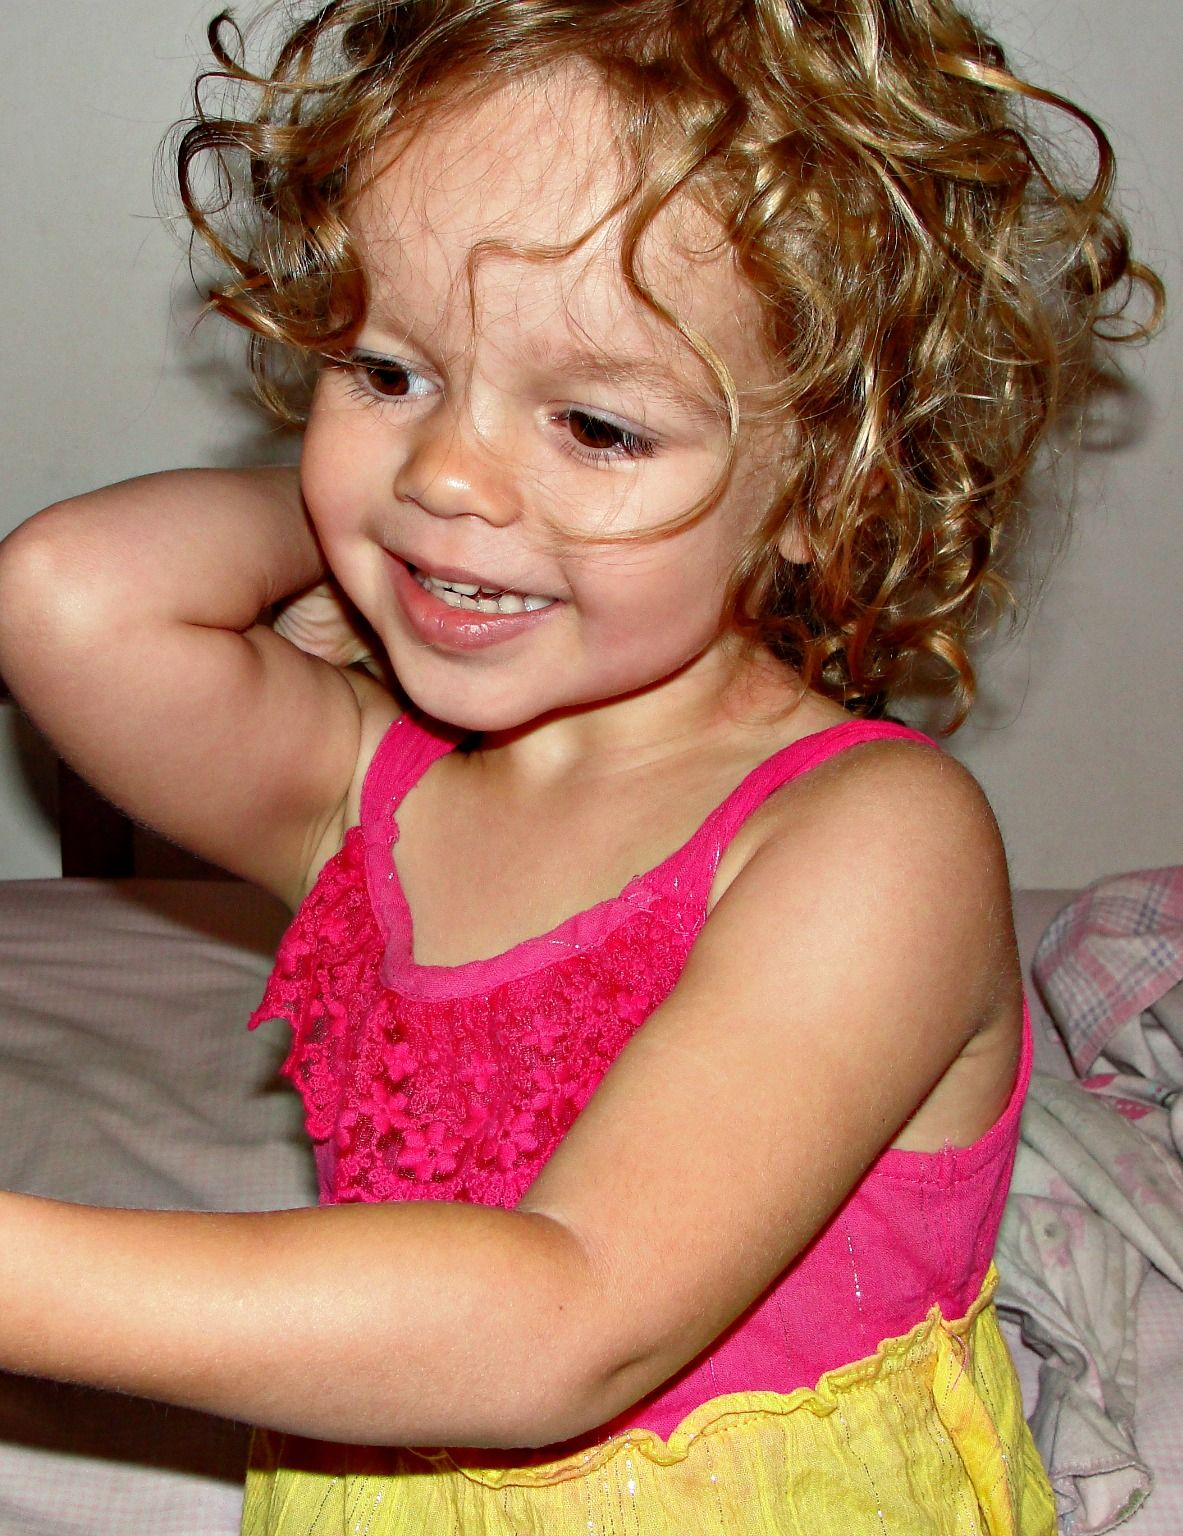 How to Care for Your Child's Curly Hair Curly hair